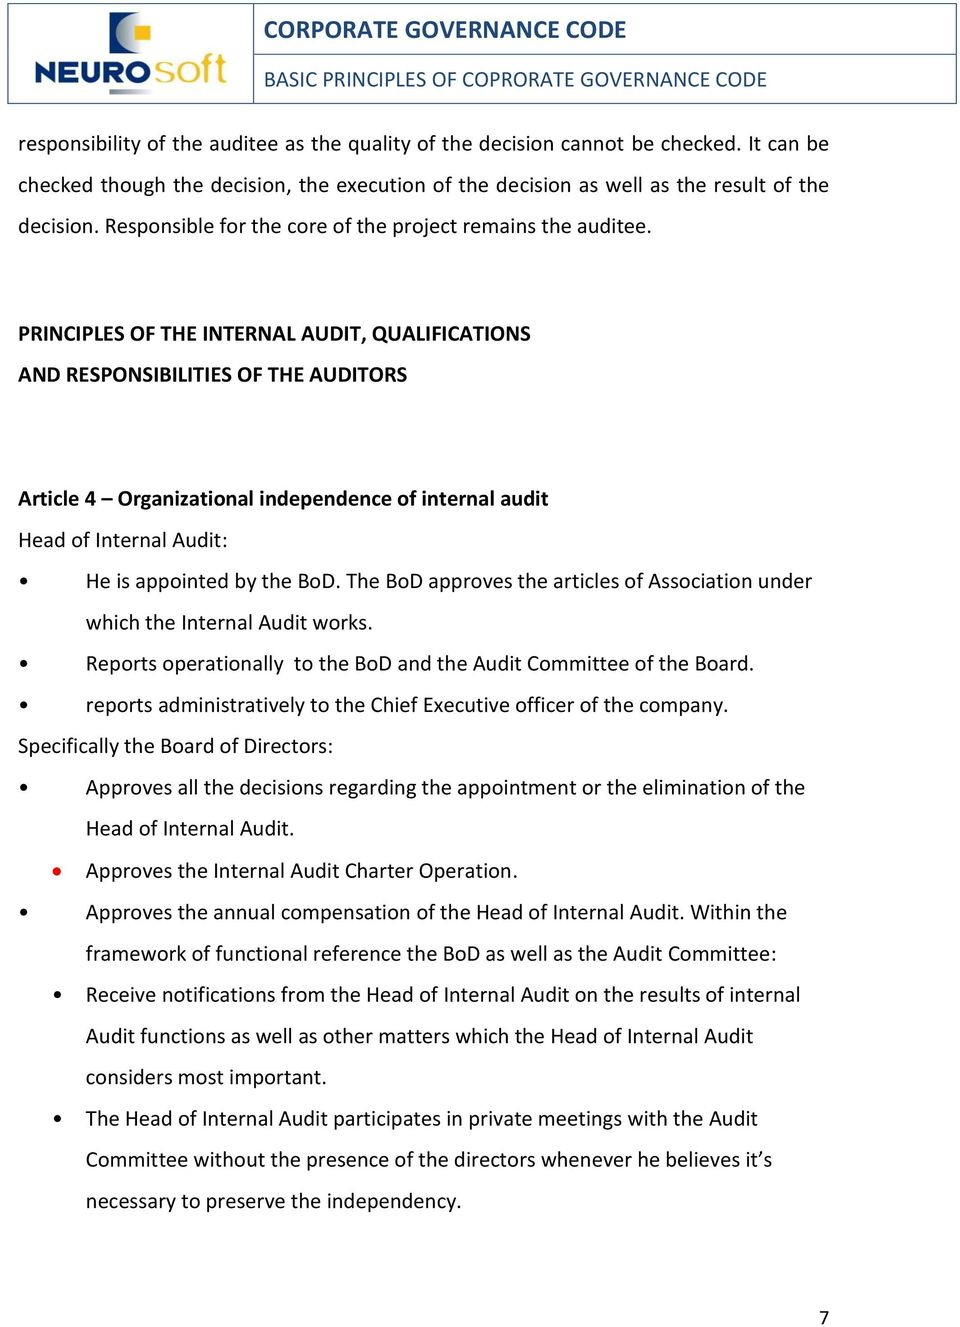 PRINCIPLES OF THE INTERNAL AUDIT, QUALIFICATIONS AND RESPONSIBILITIES OF THE AUDITORS Article 4 Organizational independence of internal audit Head of Internal Audit: He is appointed by the BoD.